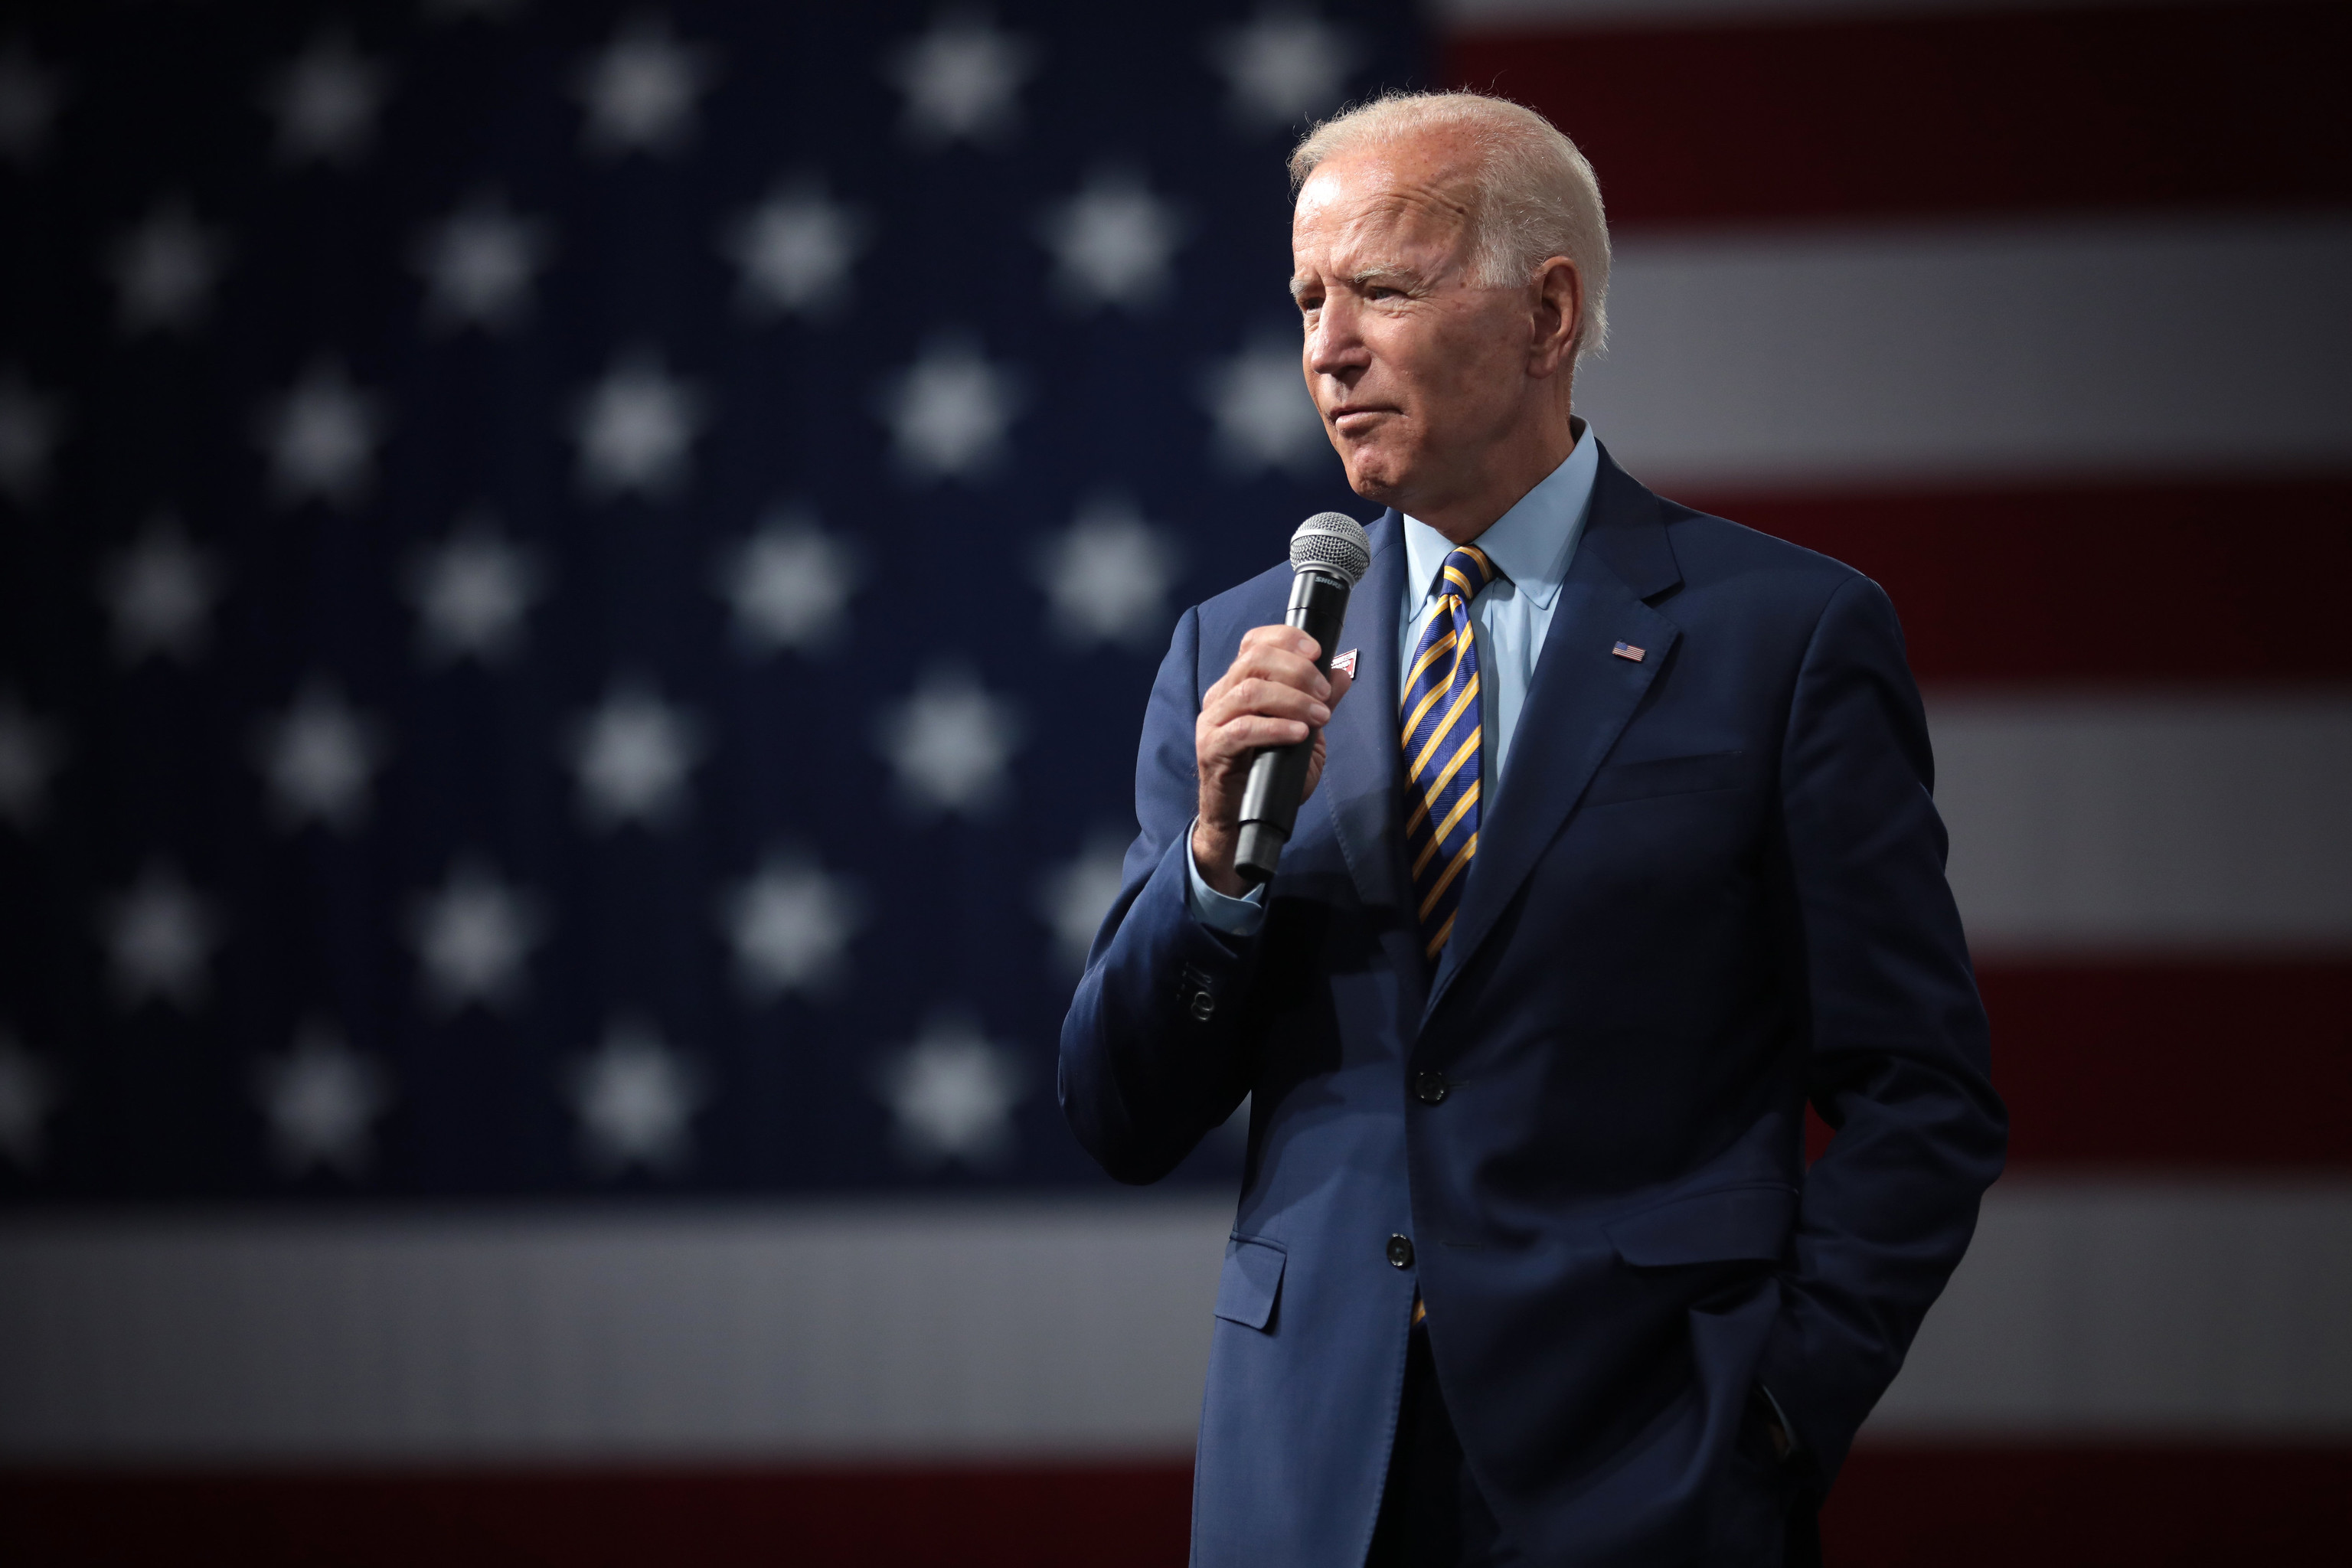 Joe Biden wearing a suit, in front of an American Flag backdrop.